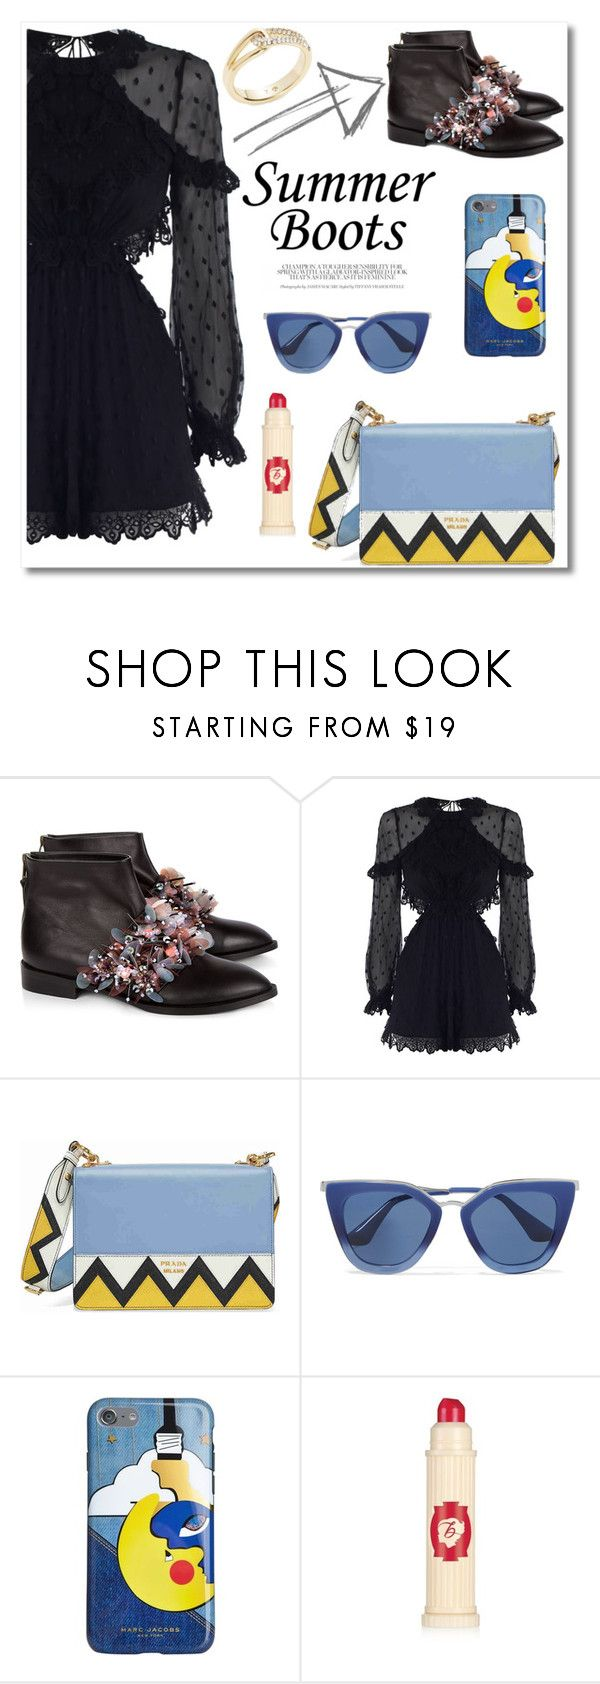 """Summer Boots"" by vkmd ❤ liked on Polyvore featuring Anouki, Zimmermann, Prada, Marc Jacobs, Benefit, Kate Spade and summerbooties"